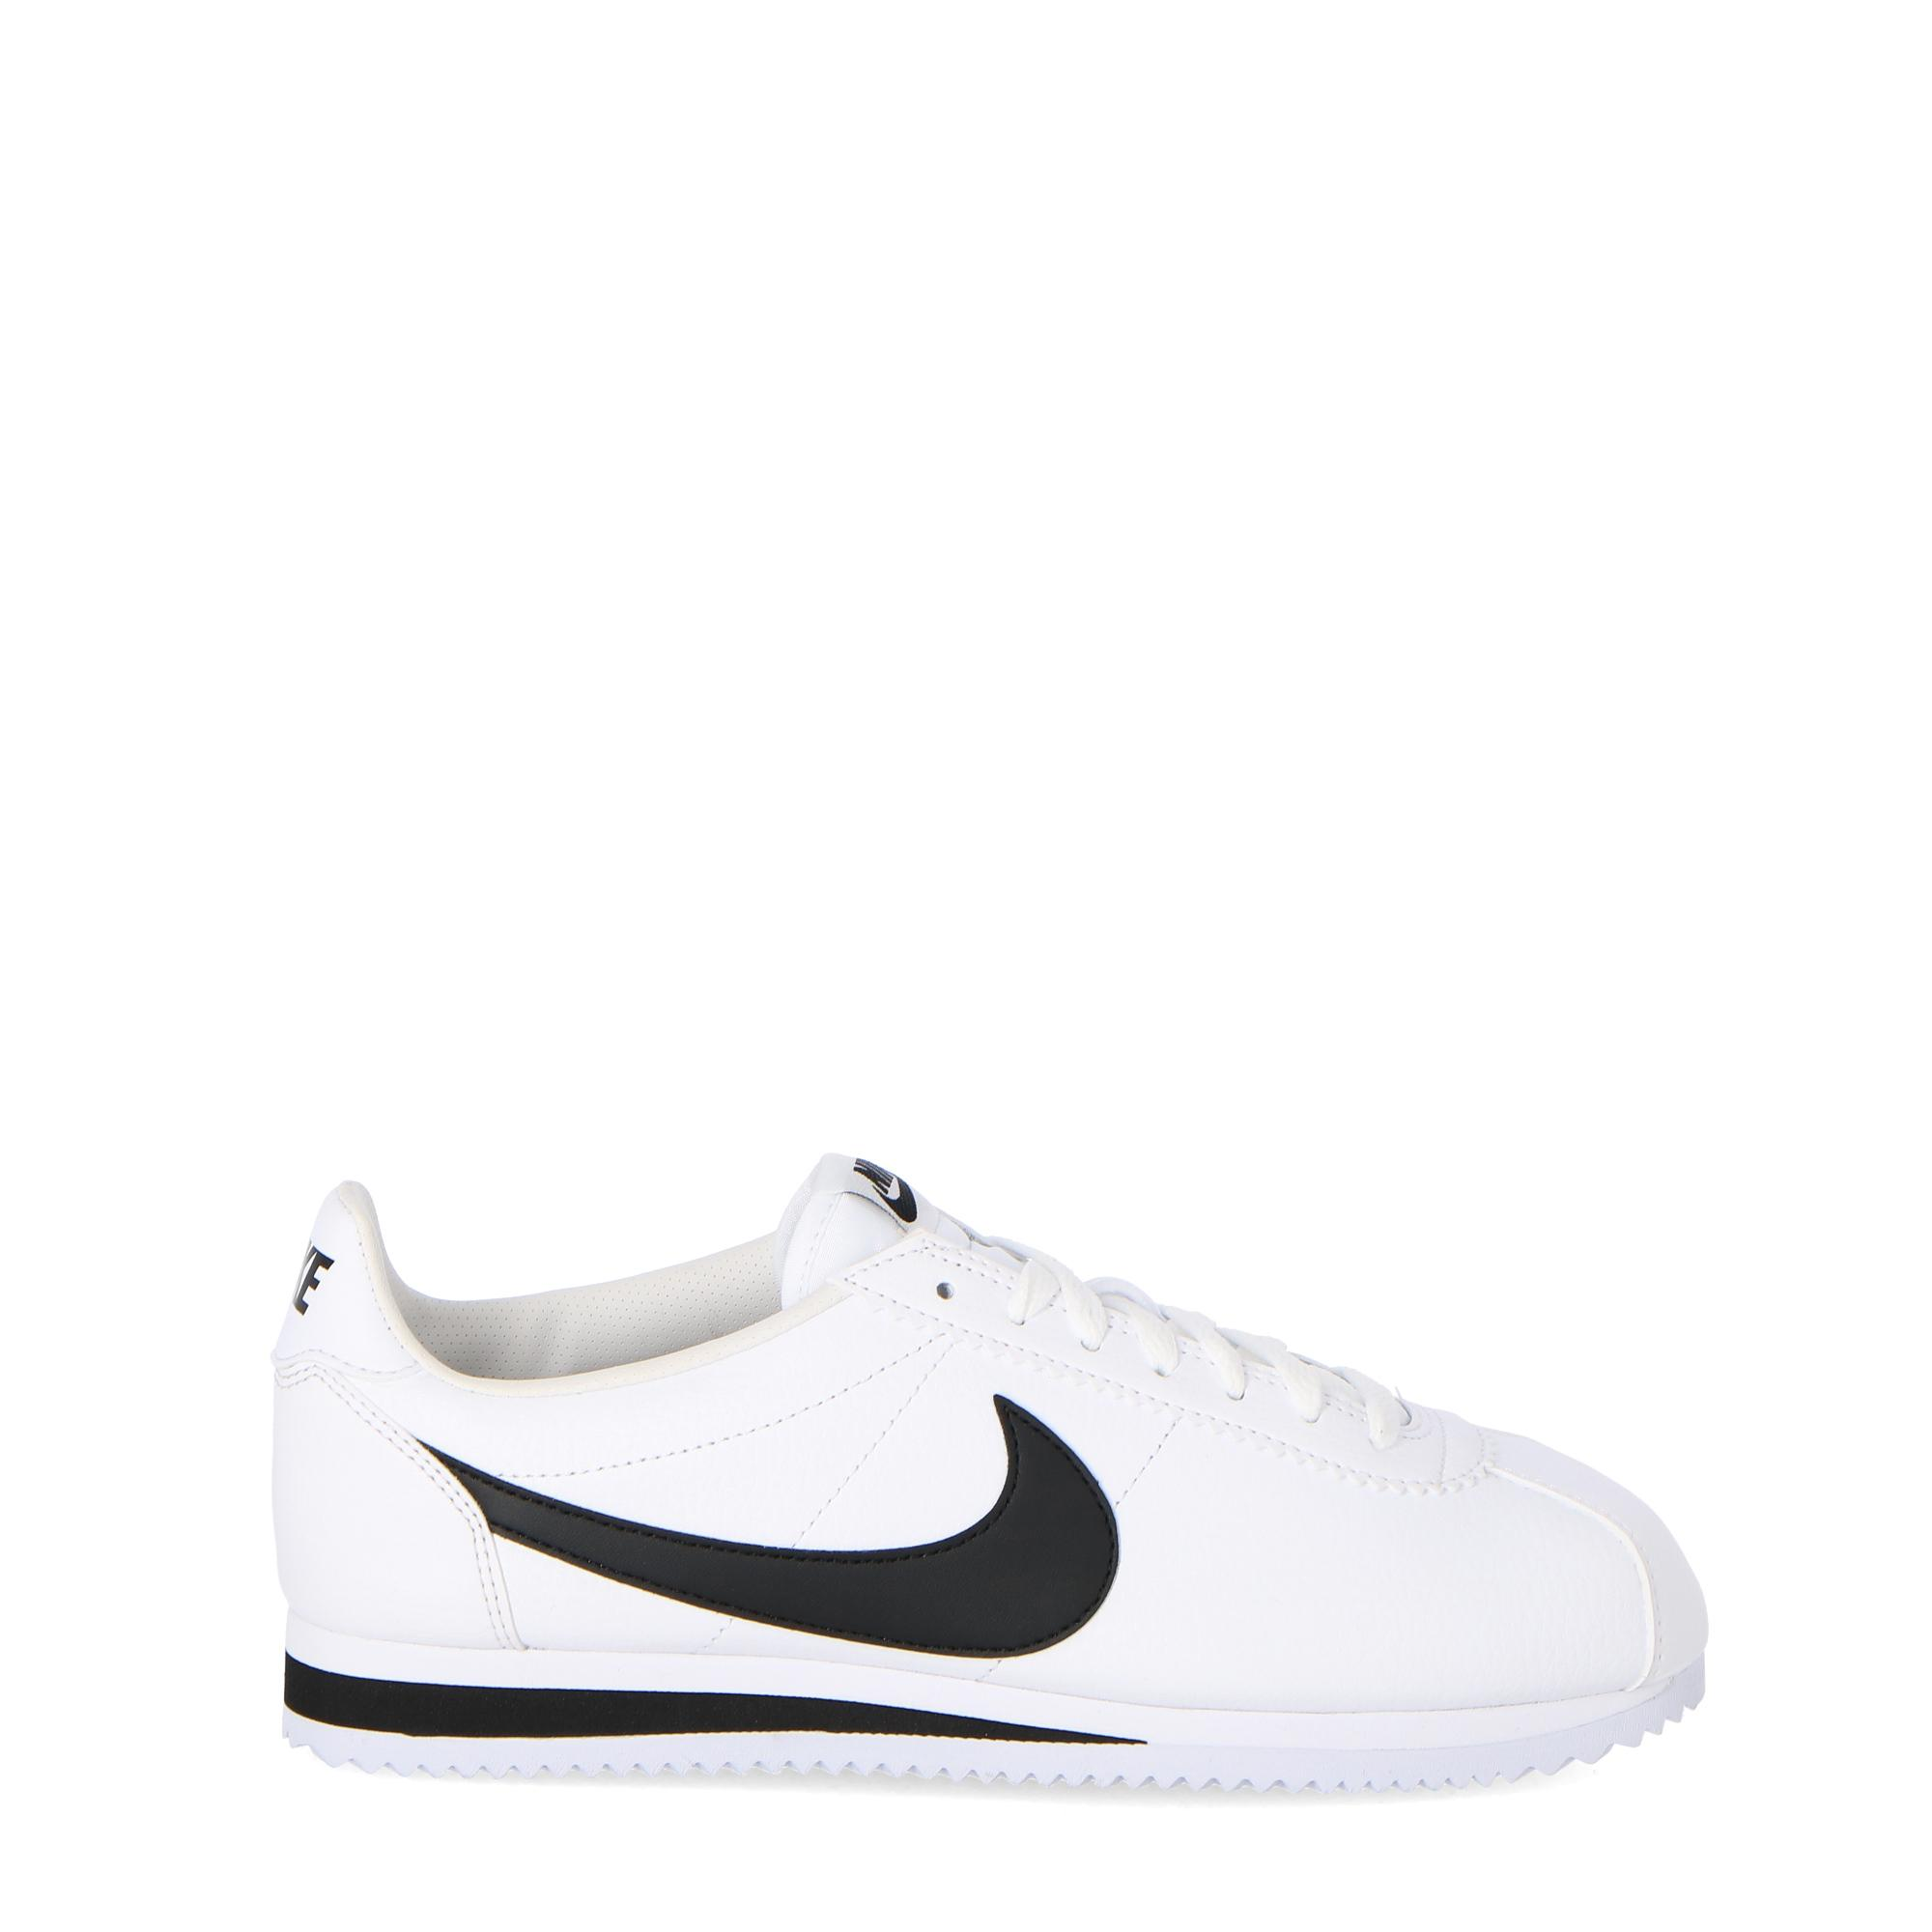 new concept 7aea5 60d4c NIKE CLASSIC CORTEZ LEATHER